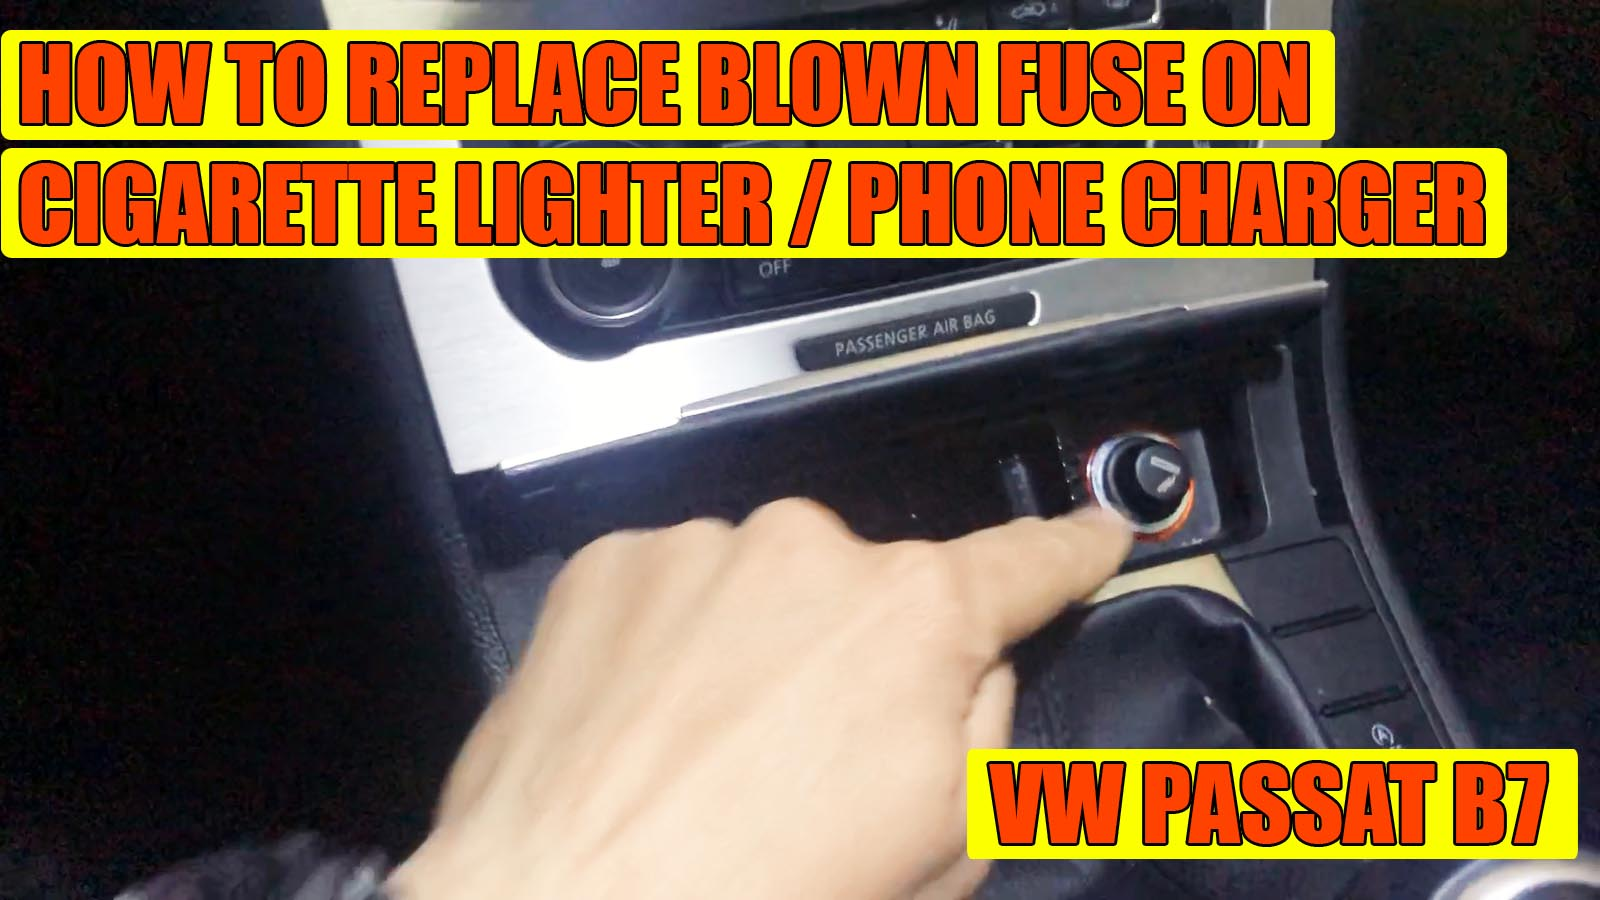 Phone Charger    Cigarette Lighter Not Working  Fuse Replacement Passat B7